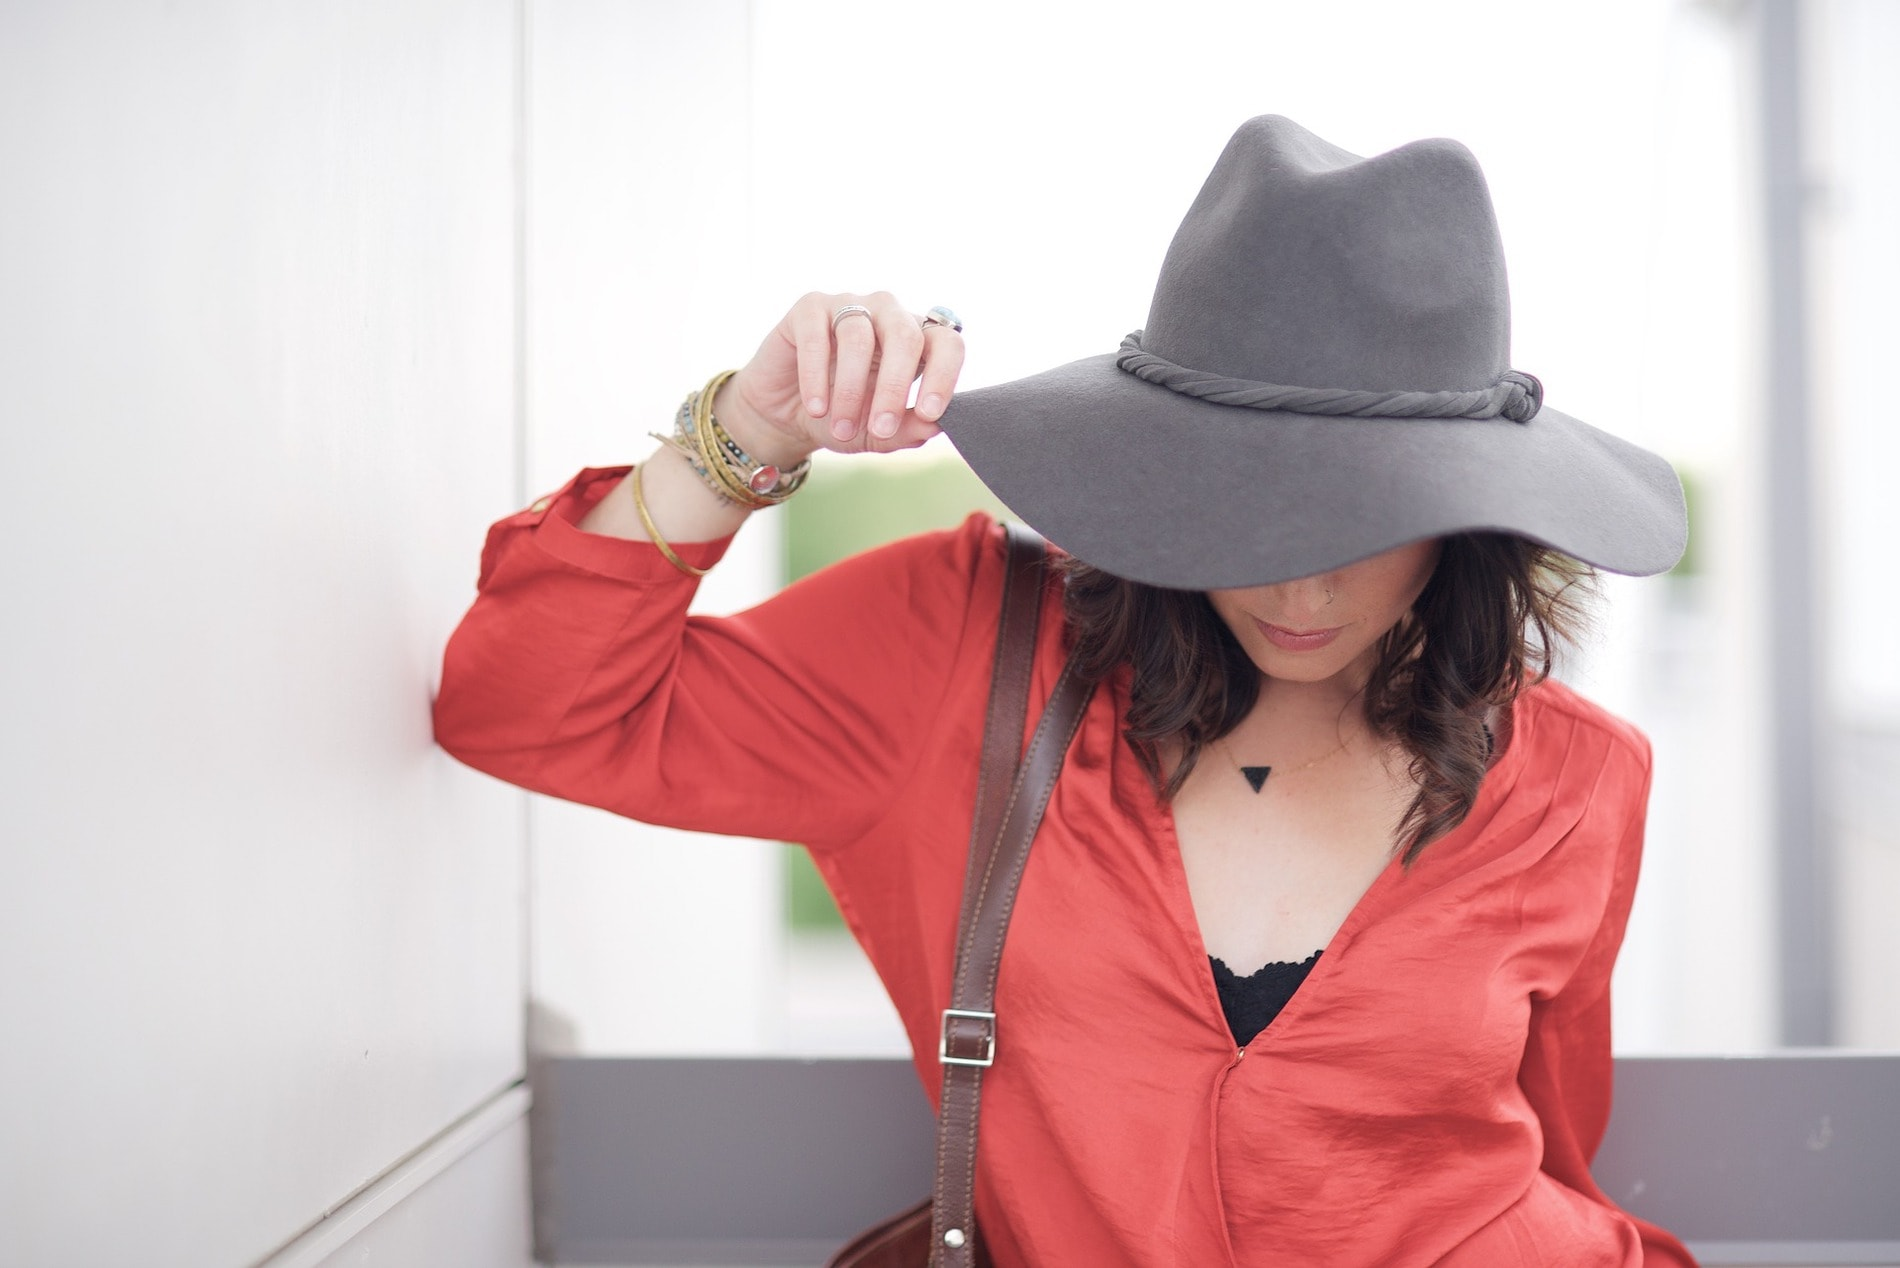 Model looking down wearing a red dress and wide-brimmed hat